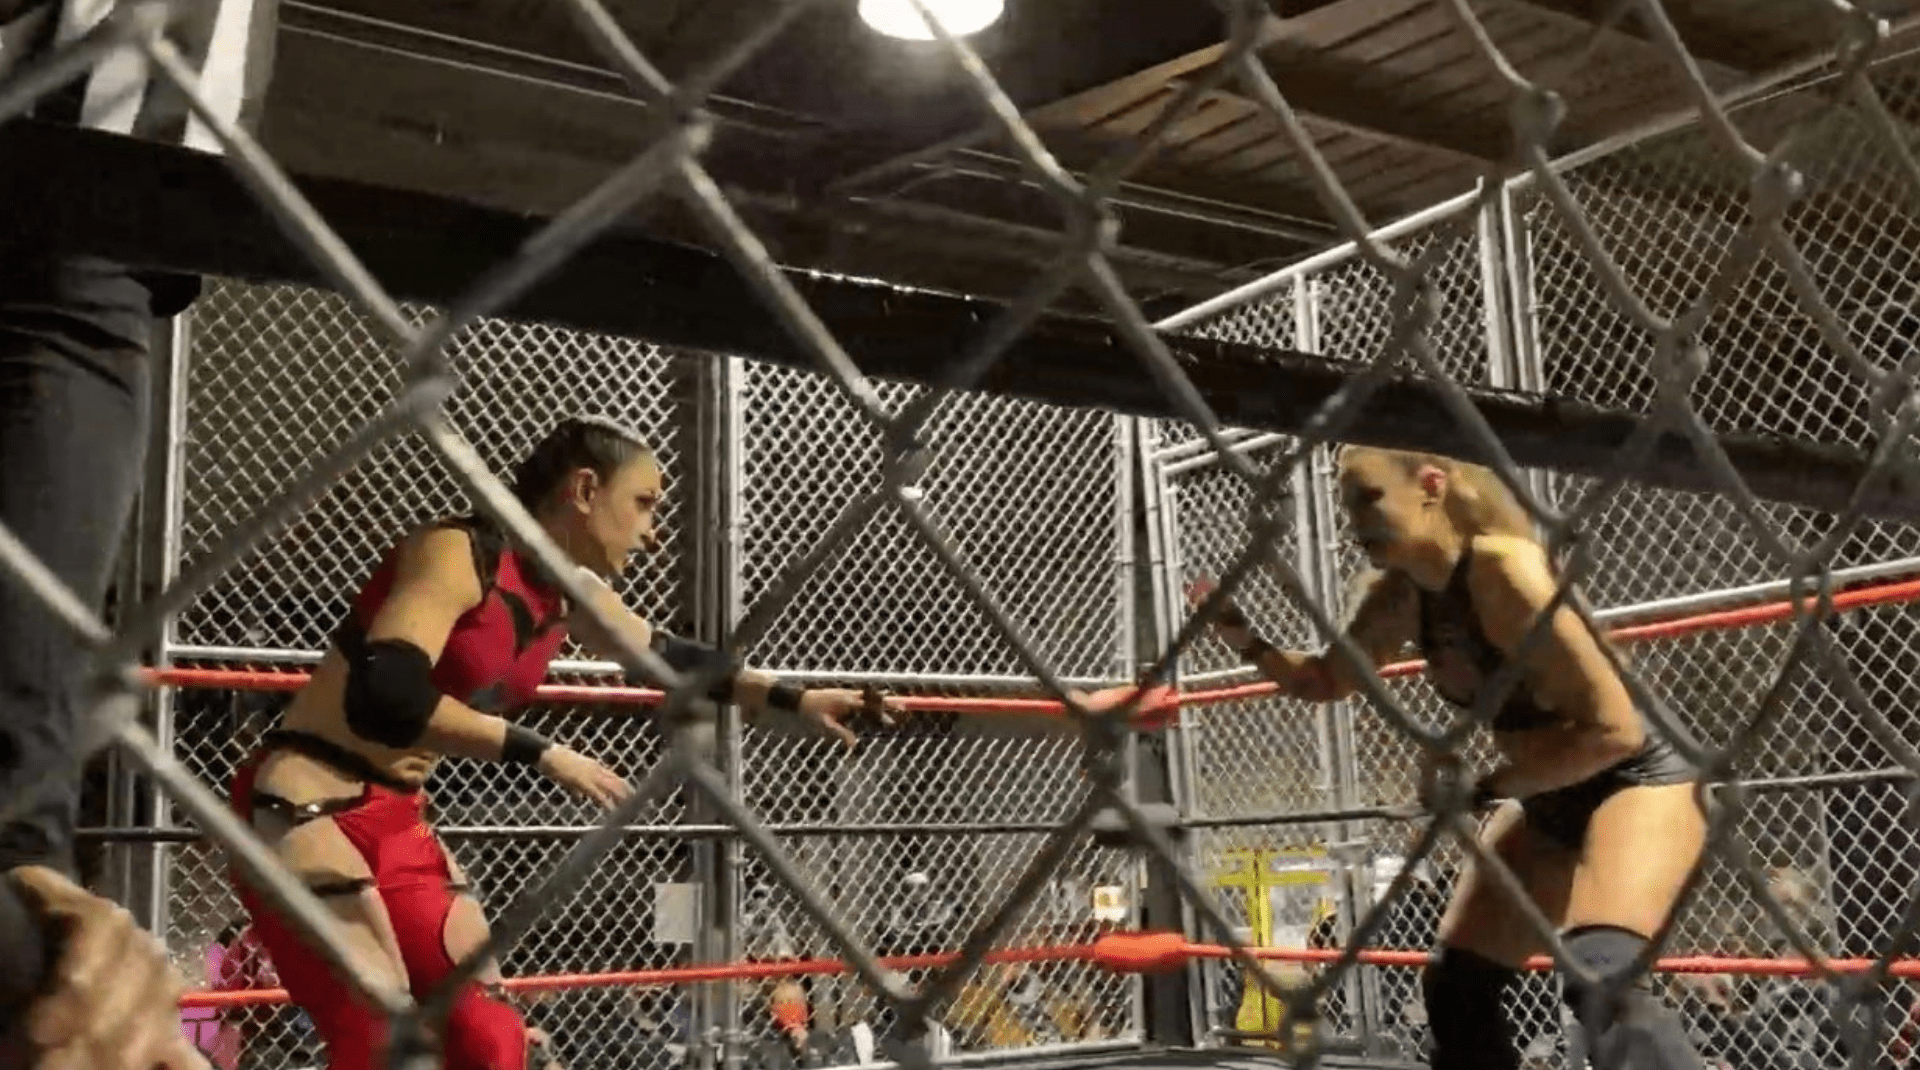 Thunder Rosa and Allysin Kay steal the show at Mission Pro